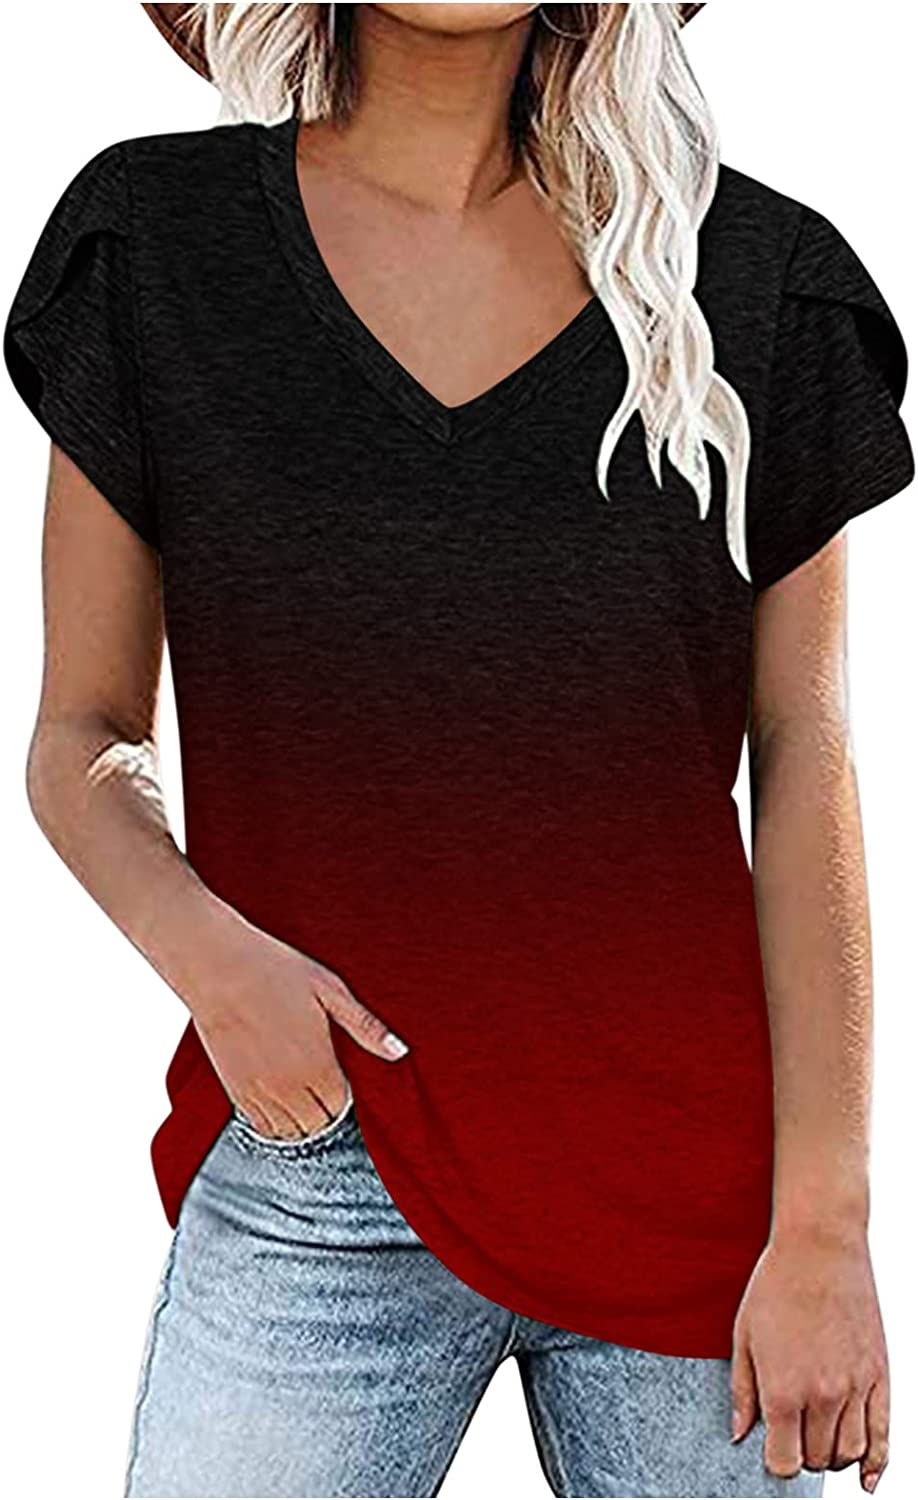 Summer Casual Tops for Women V Neck Short Sleeve Boho Printed Loose Fit Comfy T Shirts Blouses